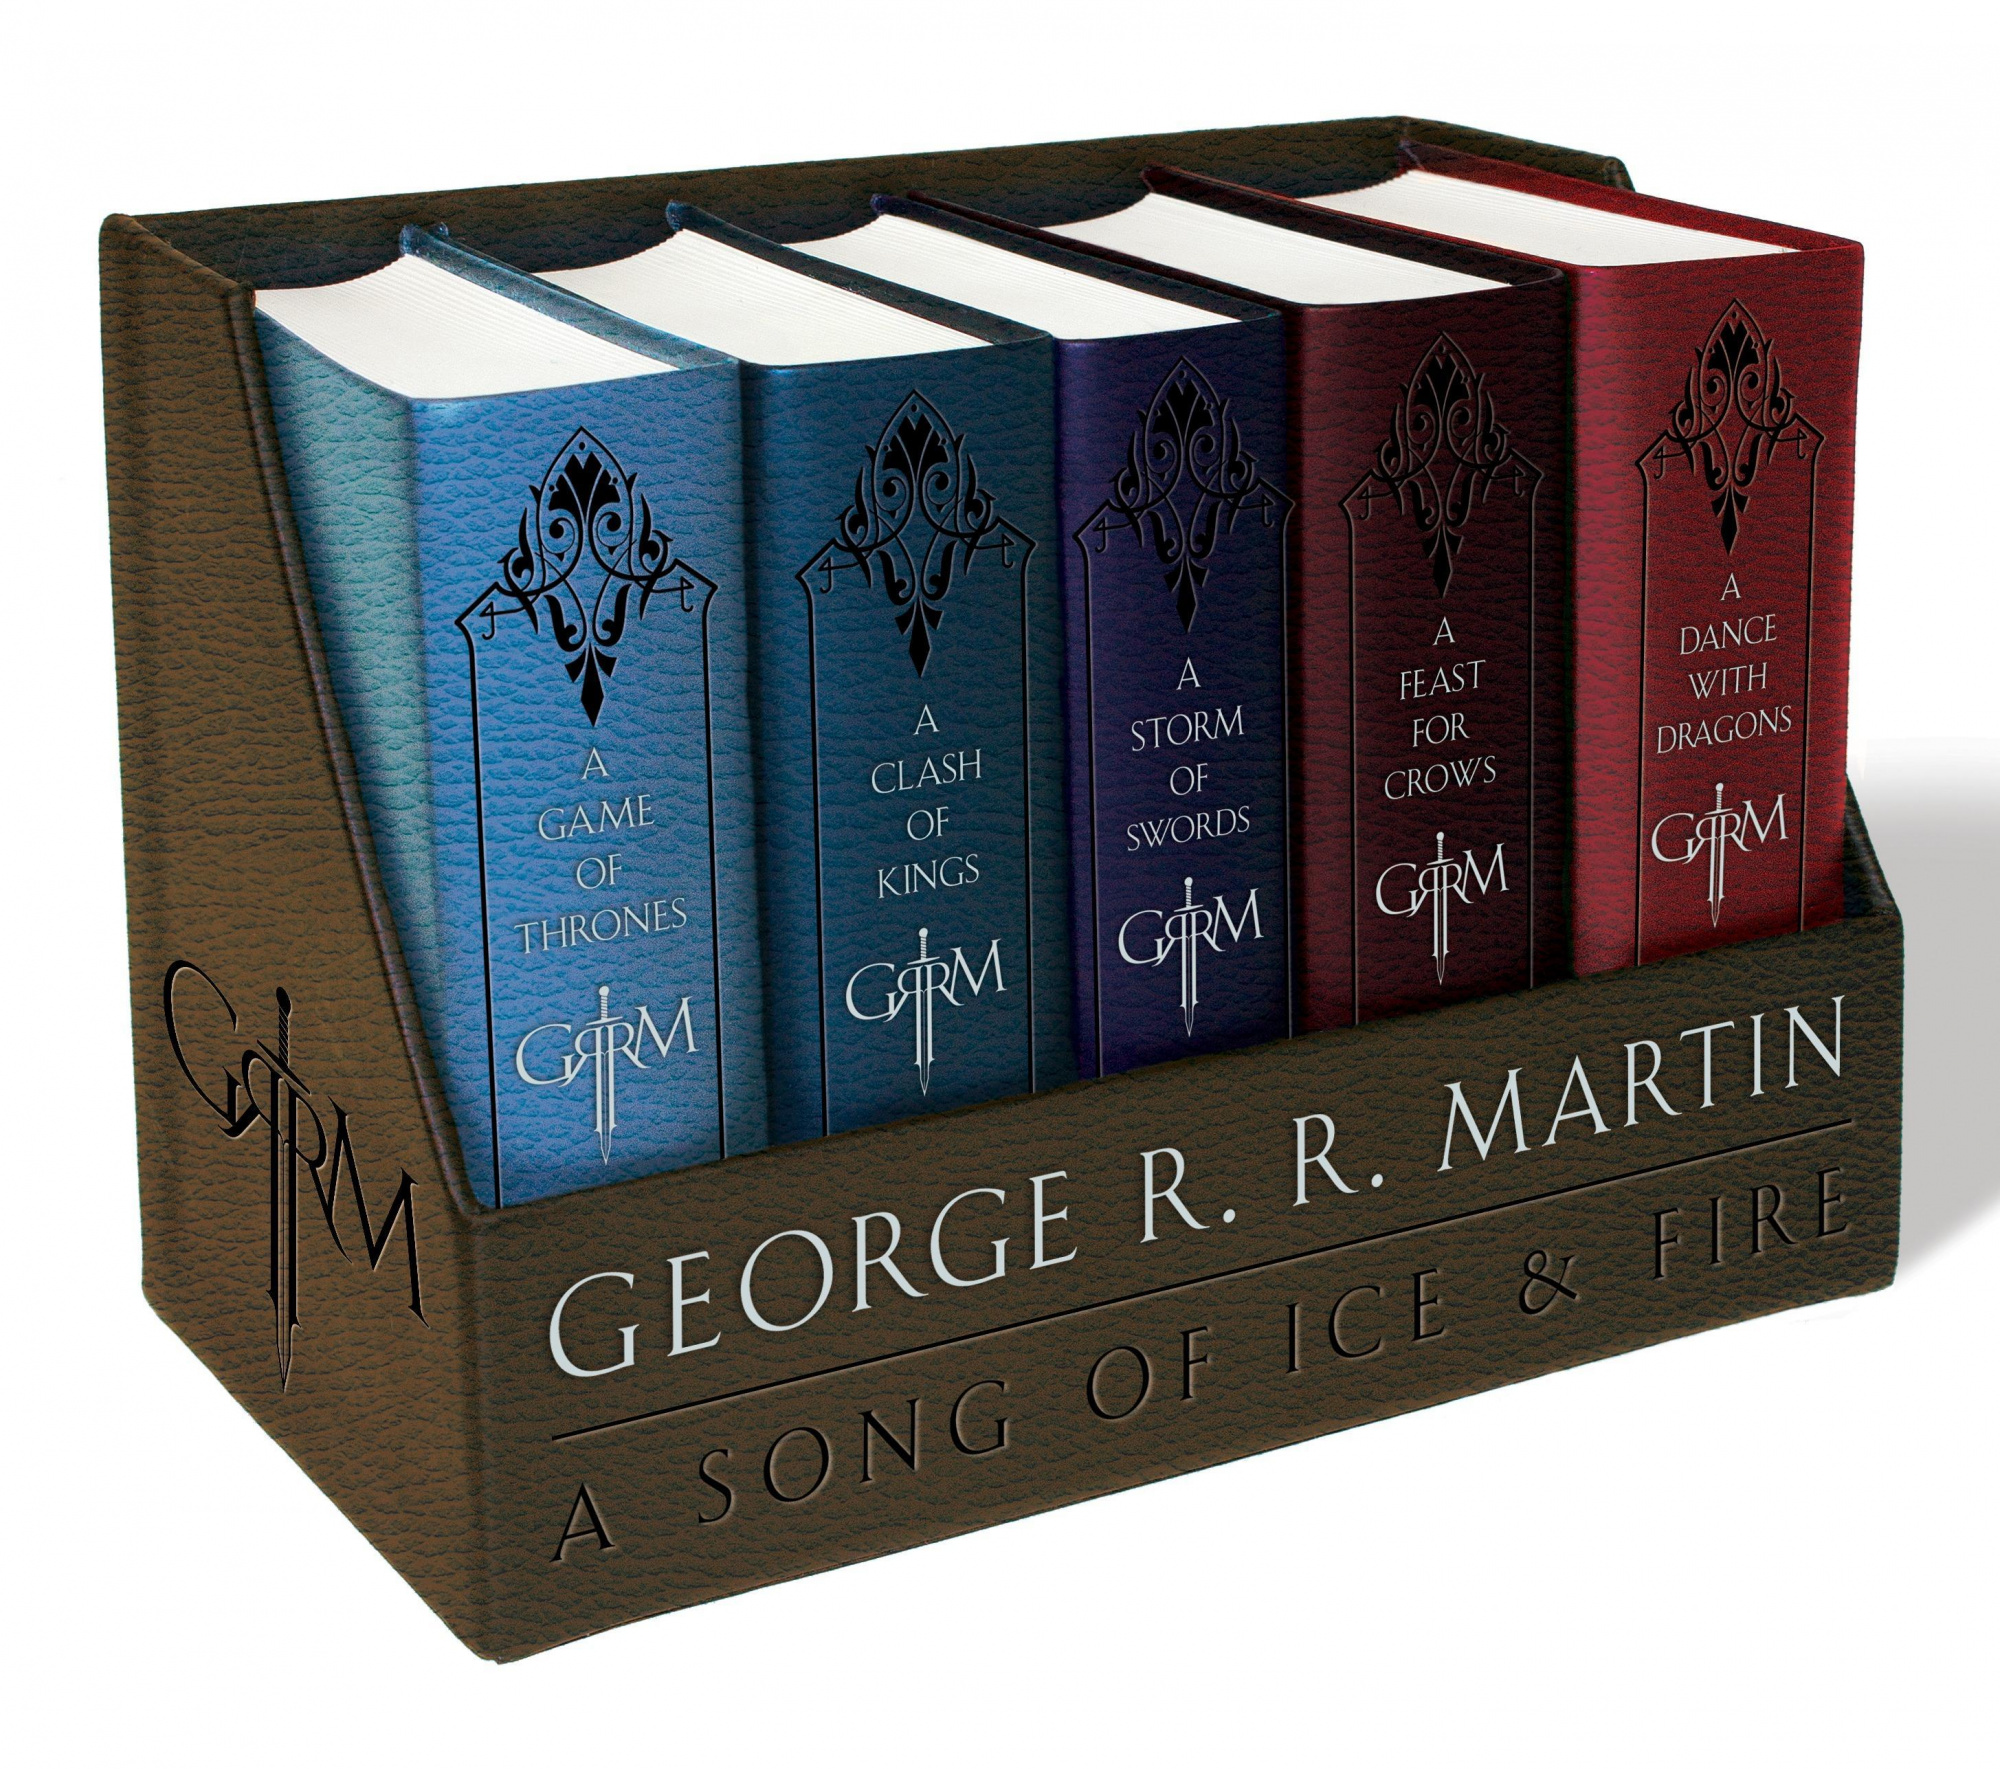 George R. R. Martin's a Game of Thrones Boxed Set: A Game of Thrones / a Clash of Kings / a Storm of Swords / a Feast for Crows / a Dance With Dragons (Song of Ice and Fire) by George R. R. Martin, ISBN: 9781101965481